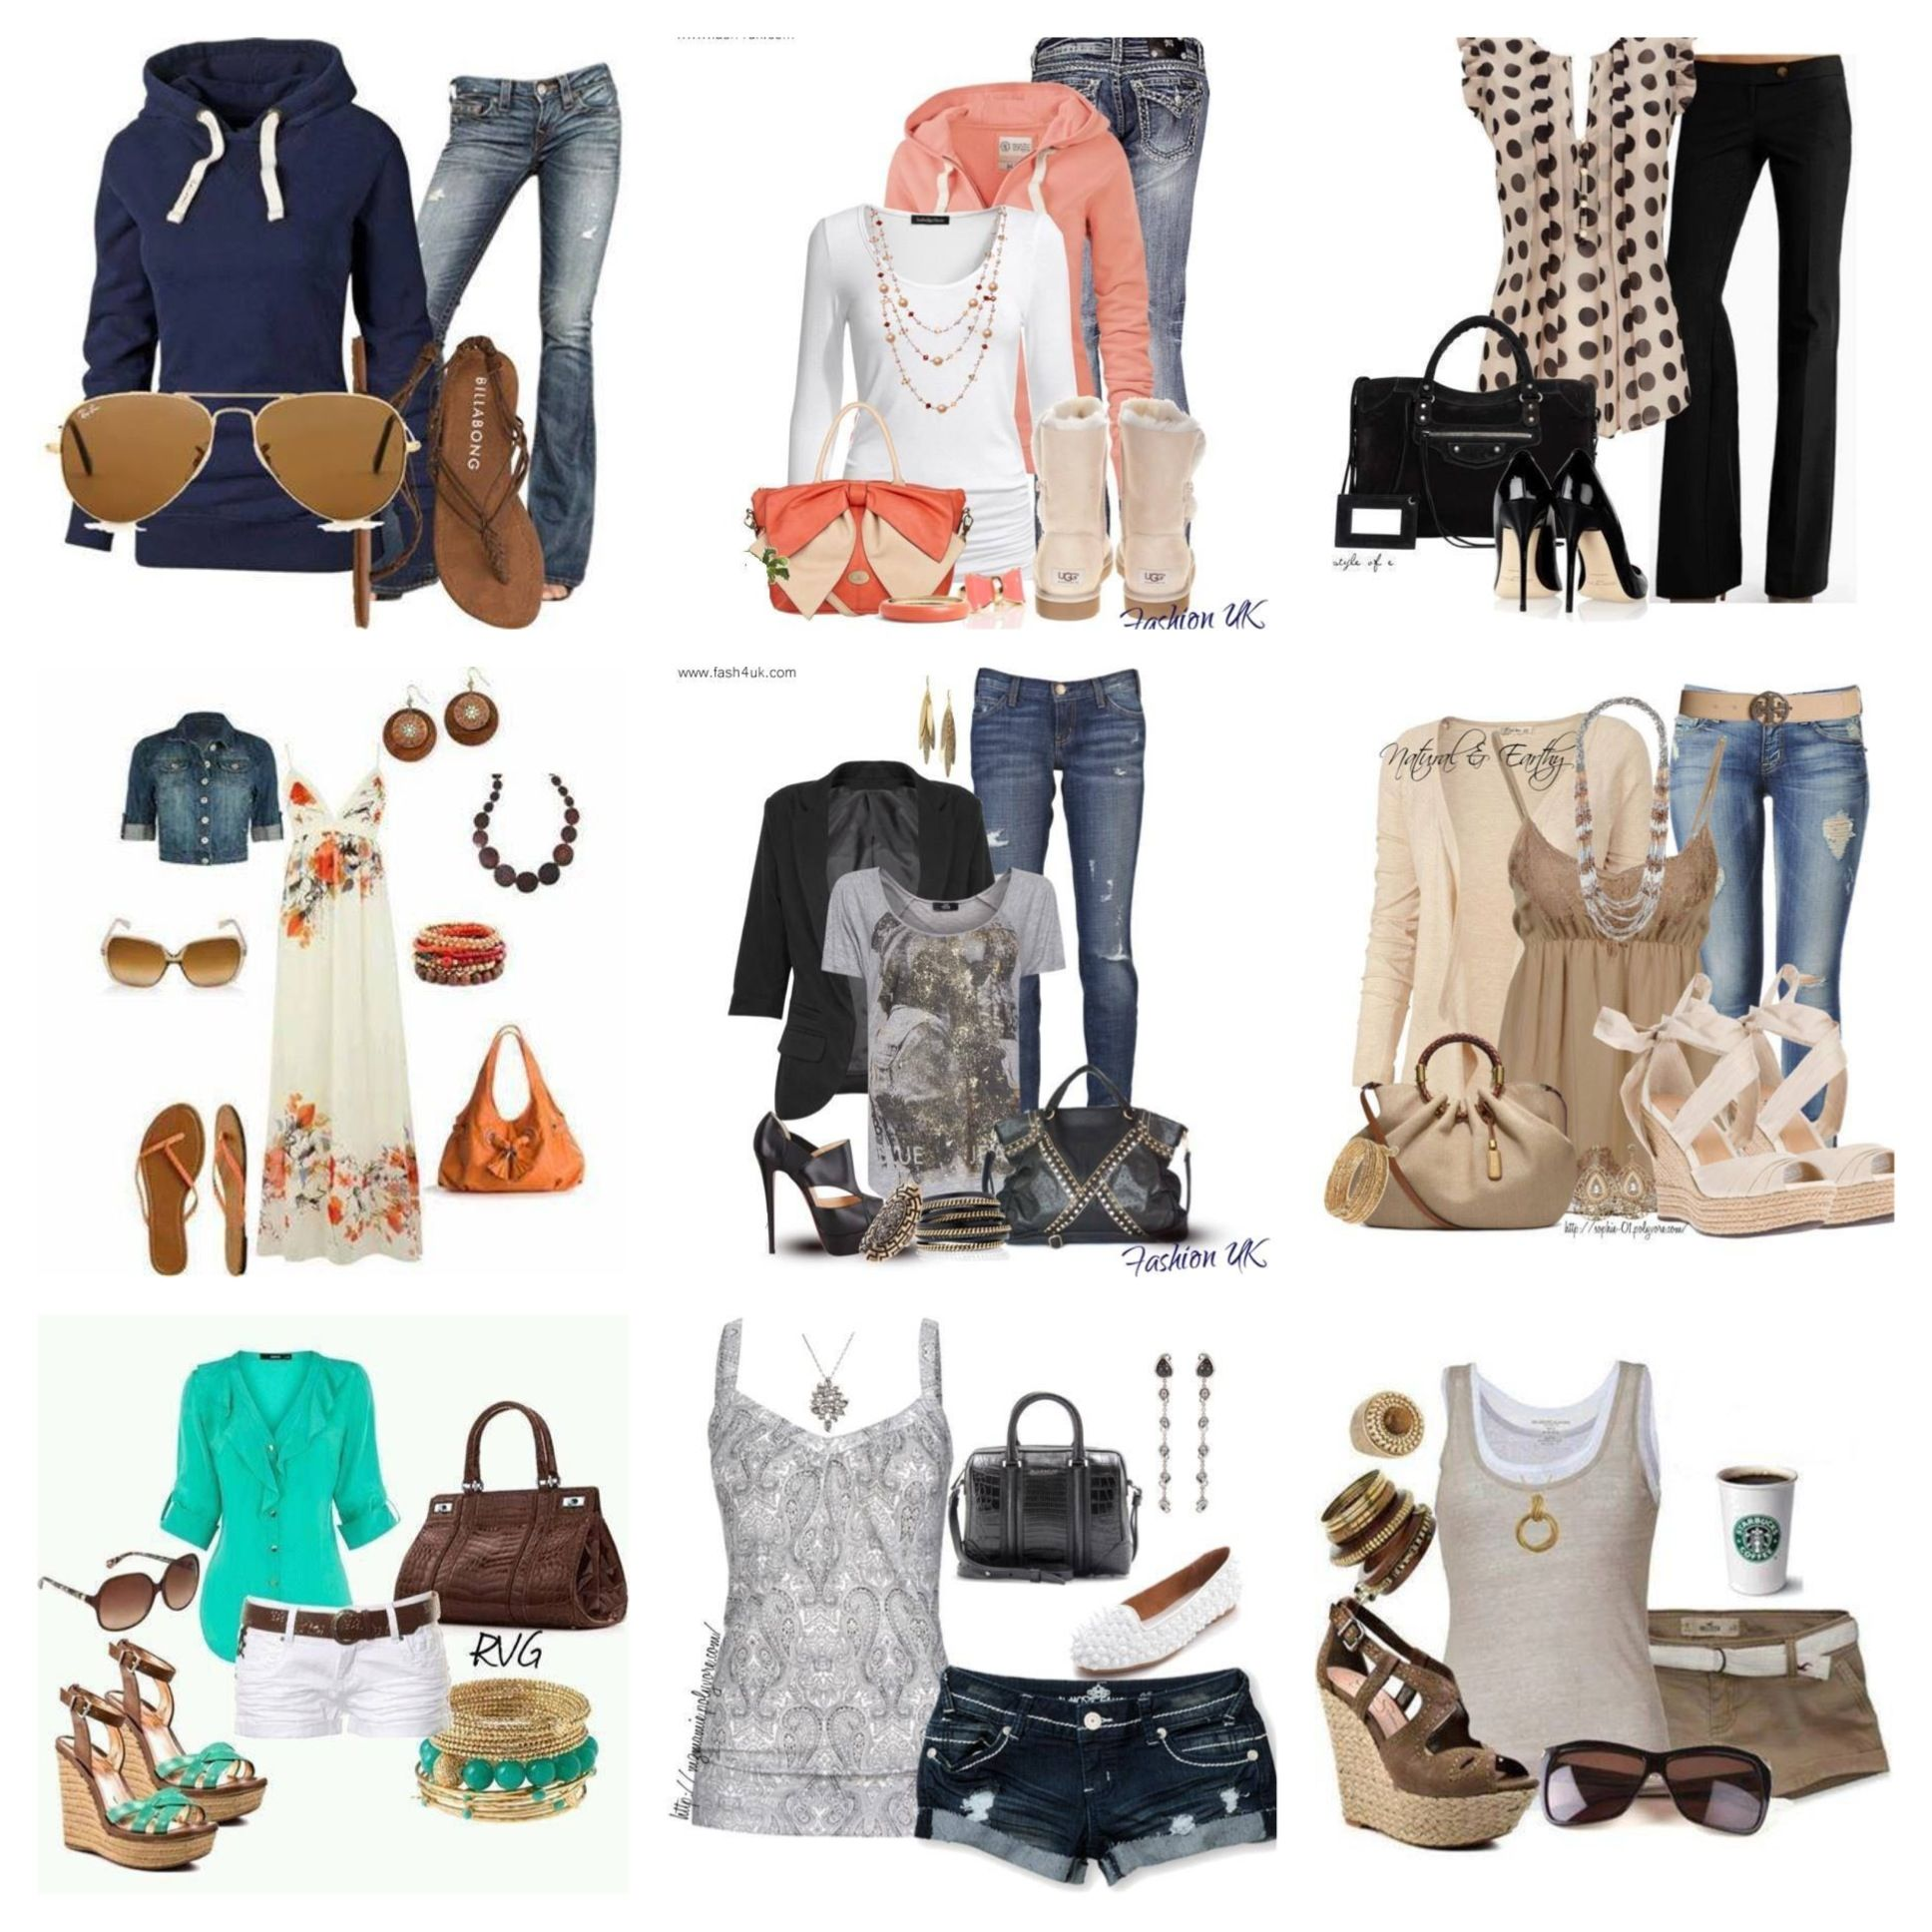 Collages of fashion sites like polyvore